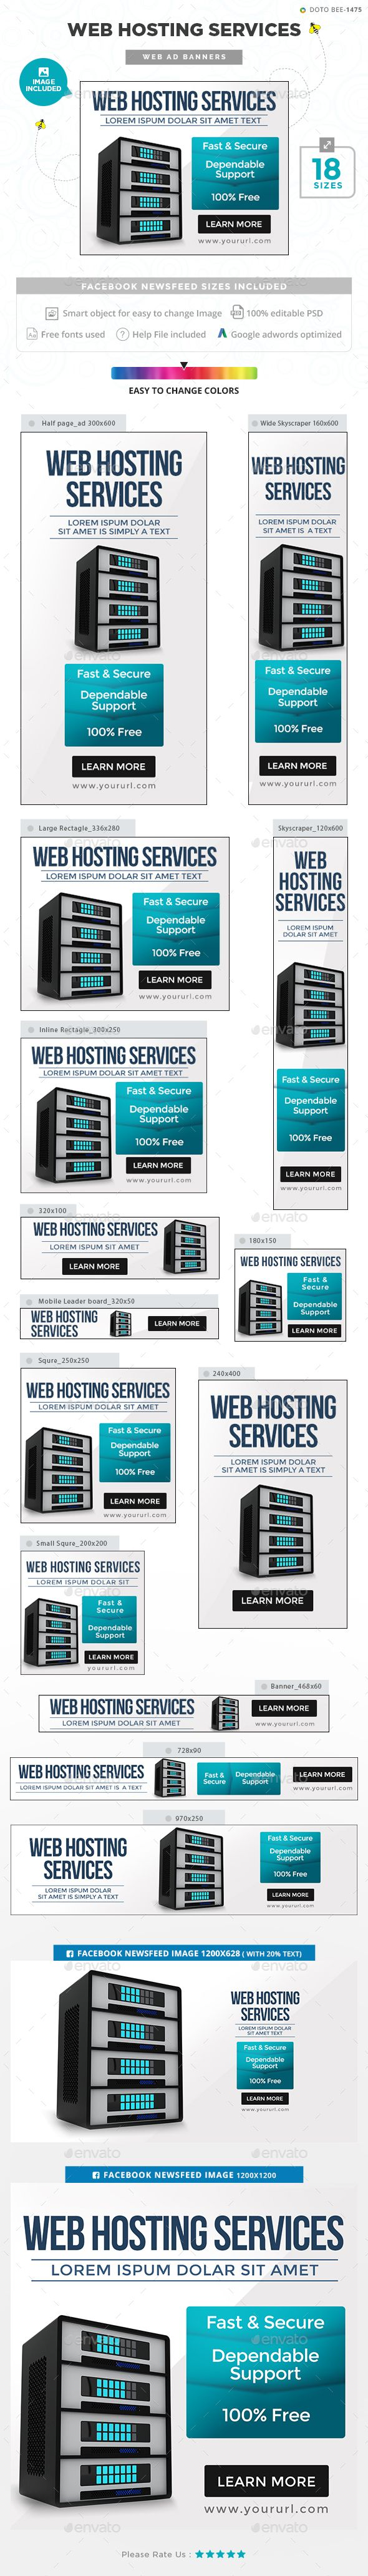 Web Hosting Service Banners - Images Included